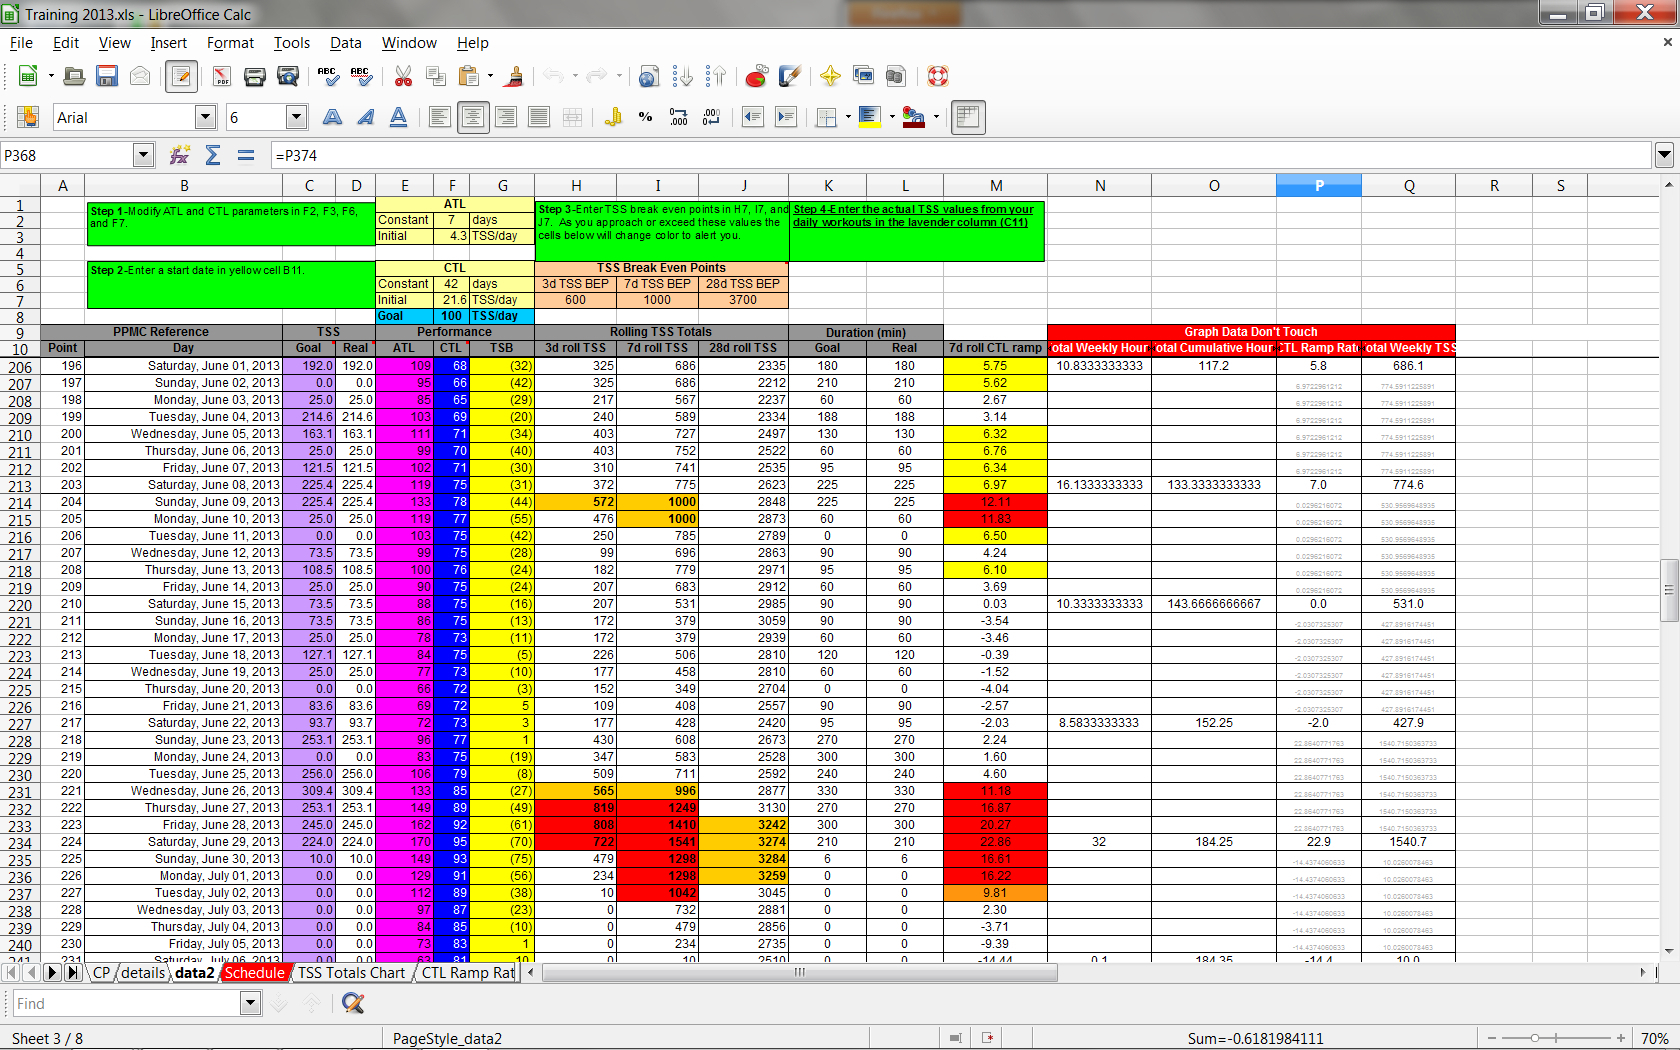 Excel Spreadsheet Training Youtube For Microsoft Excel Spreadsheet Training On Excel Spreadsheet Templates